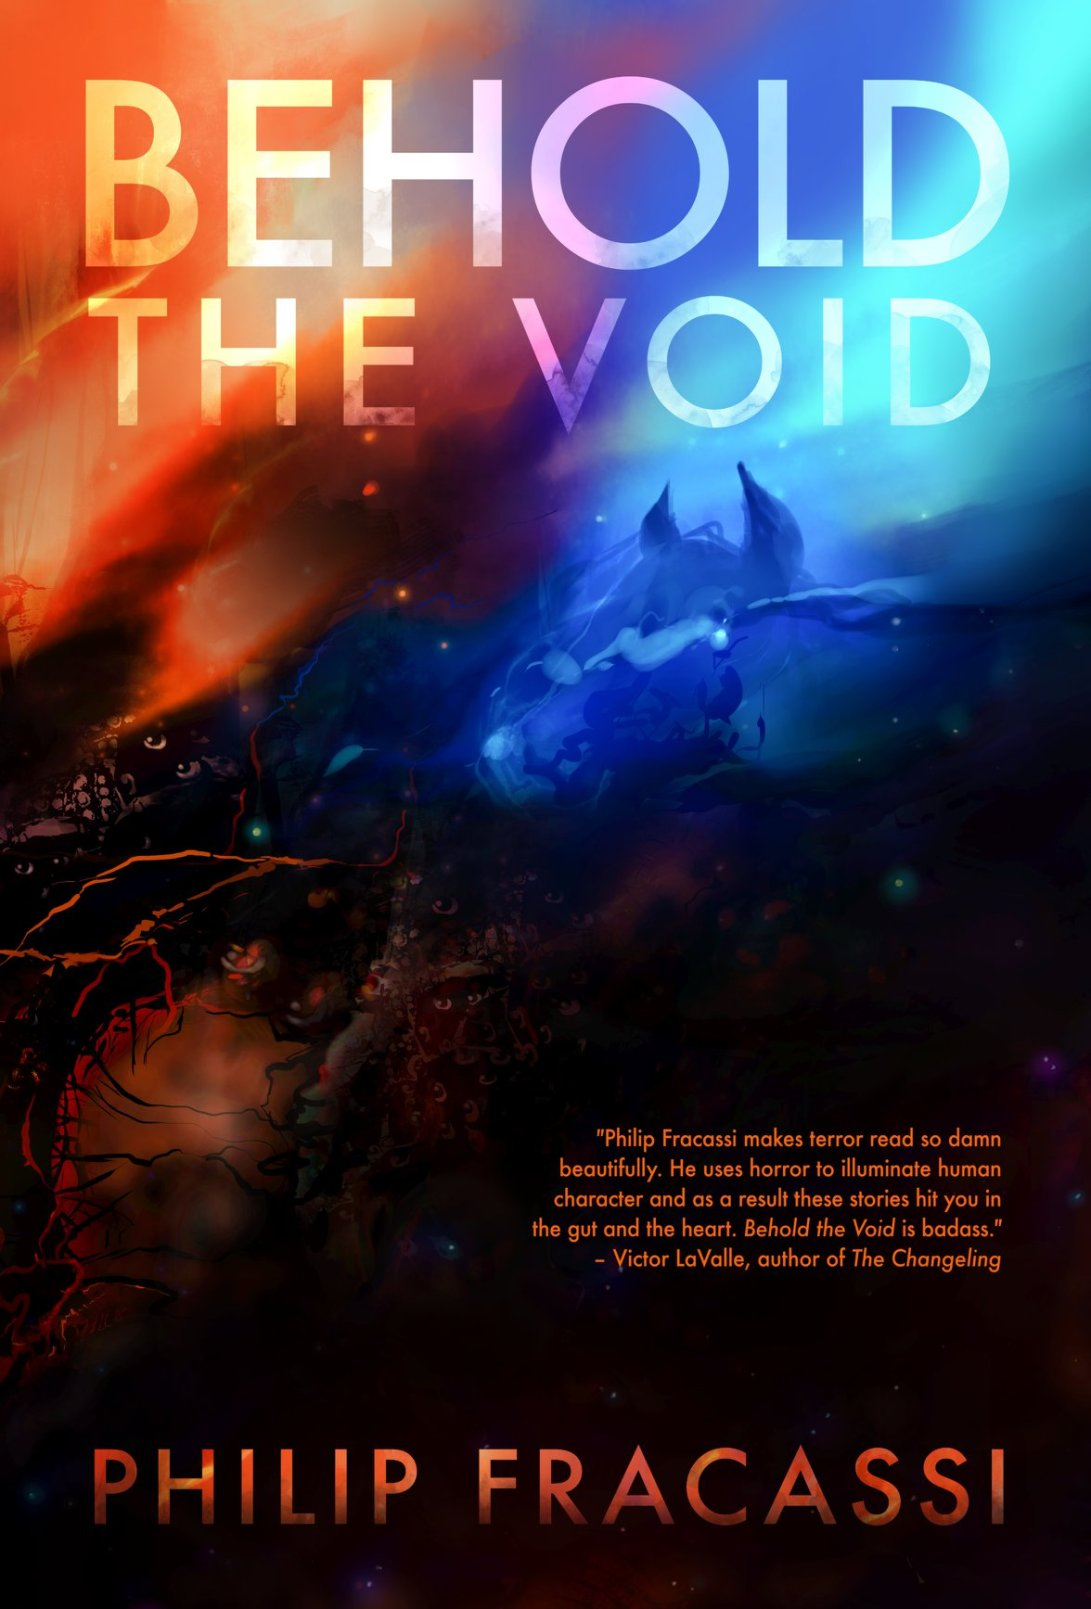 Behold-The-Void_sandpaperdaisy